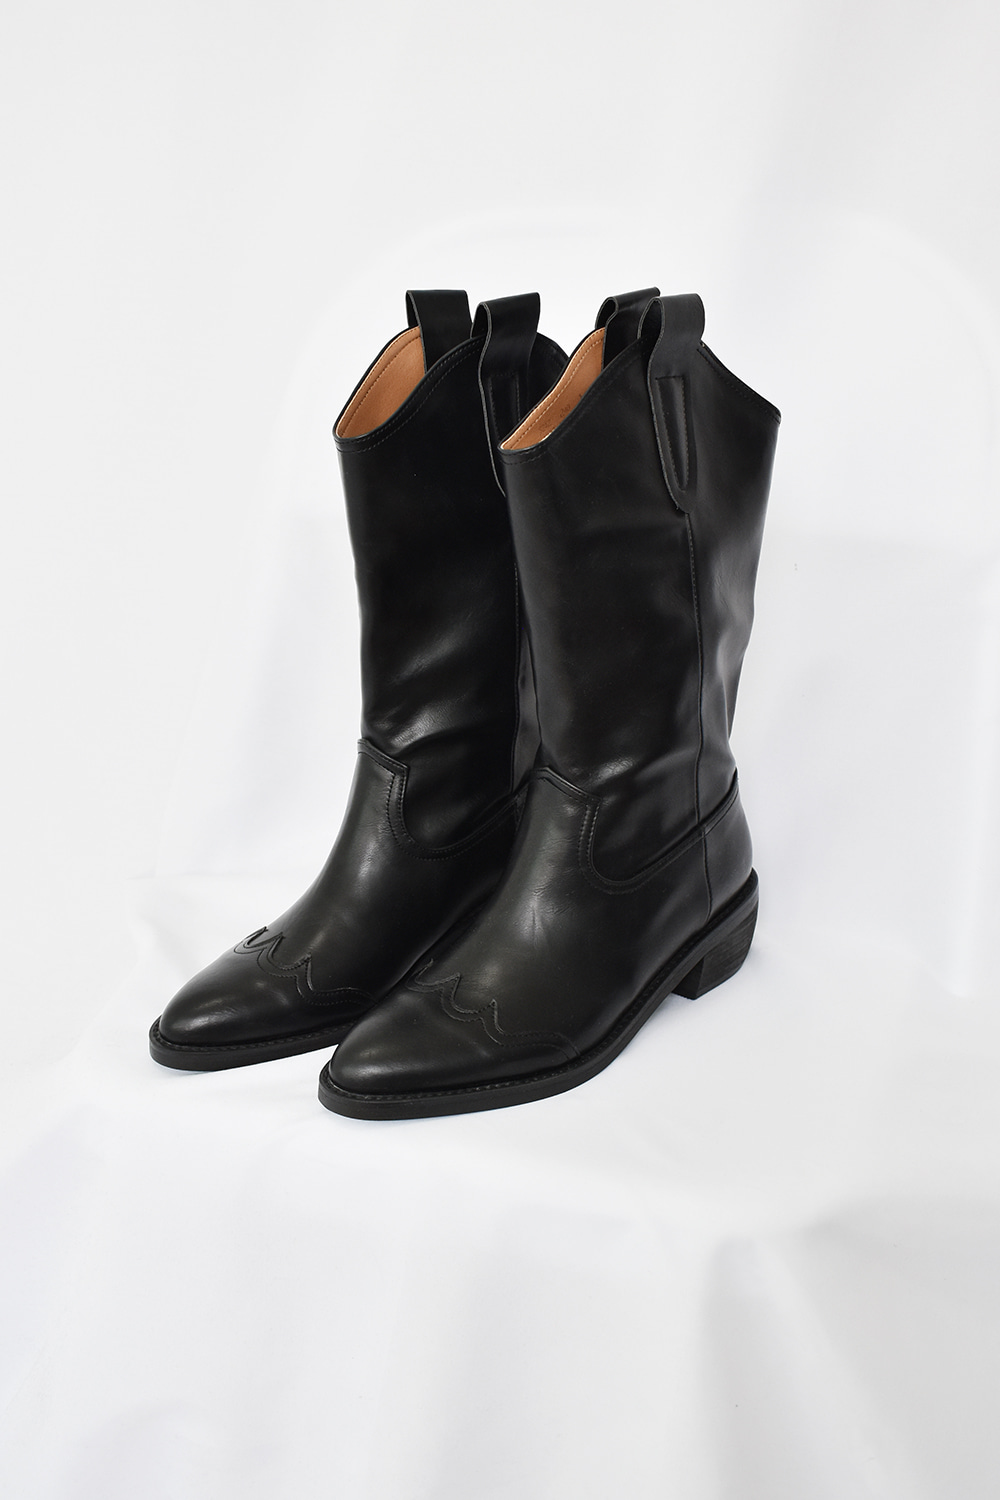 middle western boots (2colors)